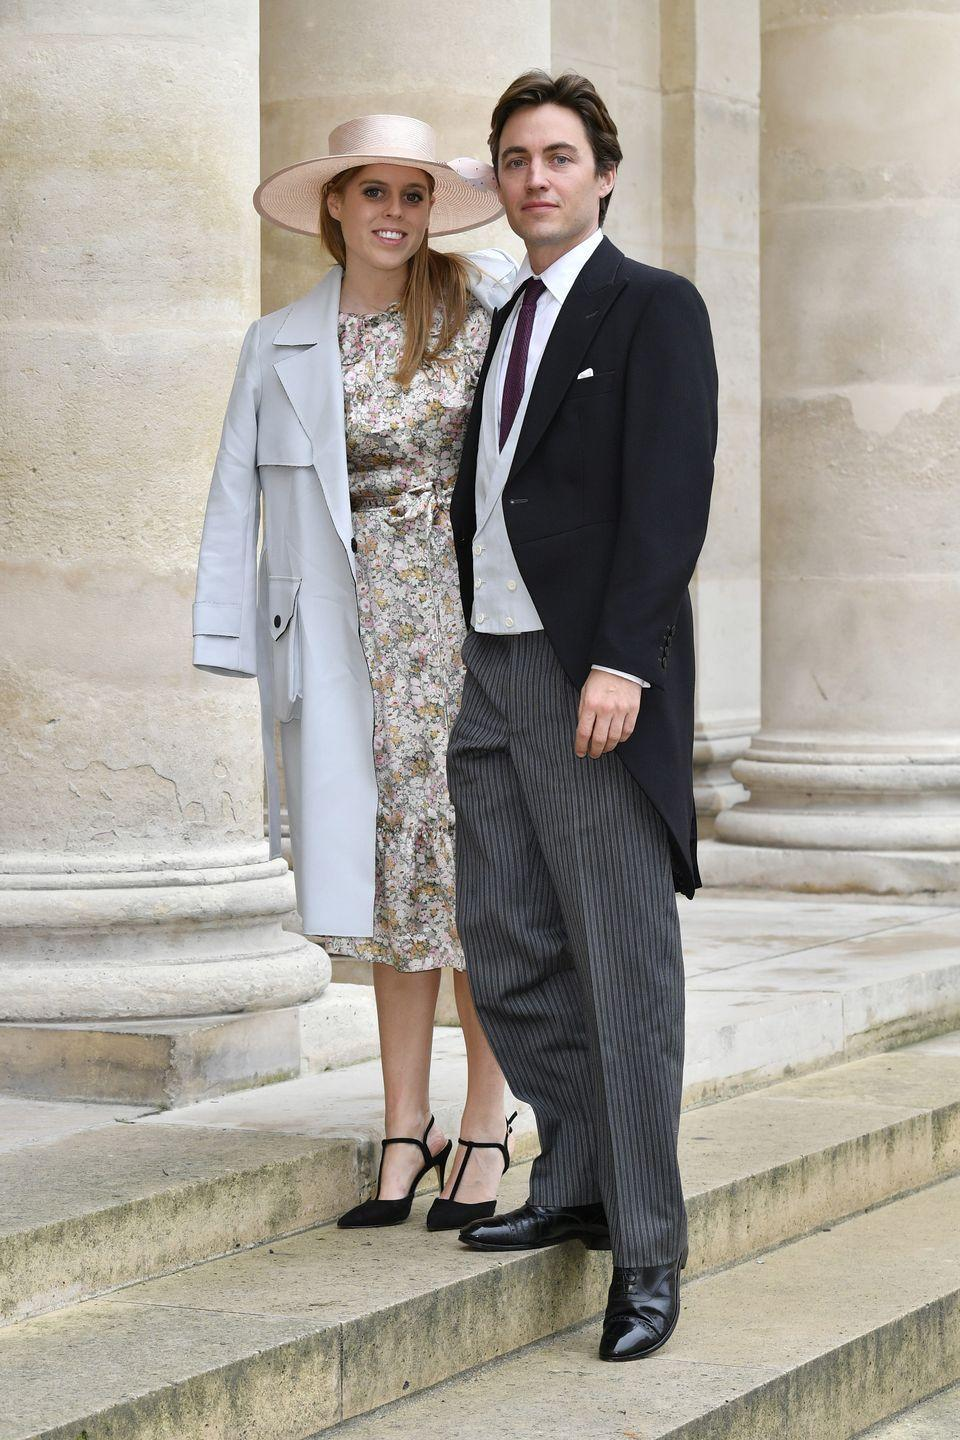 """<p><strong>When did they meet?</strong> 2018</p><p><strong>How did they meet? </strong><a href=""""https://www.cosmopolitan.com/uk/reports/a37347694/princess-beatrice-unknown-fact-edoardo-mapelli-mozzi/"""" rel=""""nofollow noopener"""" target=""""_blank"""" data-ylk=""""slk:Princess Beatrice and Edo"""" class=""""link rapid-noclick-resp"""">Princess Beatrice and Edo</a>'s parents met in Verbier in 1972 and have been close friends ever since. It makes sense then that the couple crossed paths – they met at a mutual friend's party in London.</p>"""